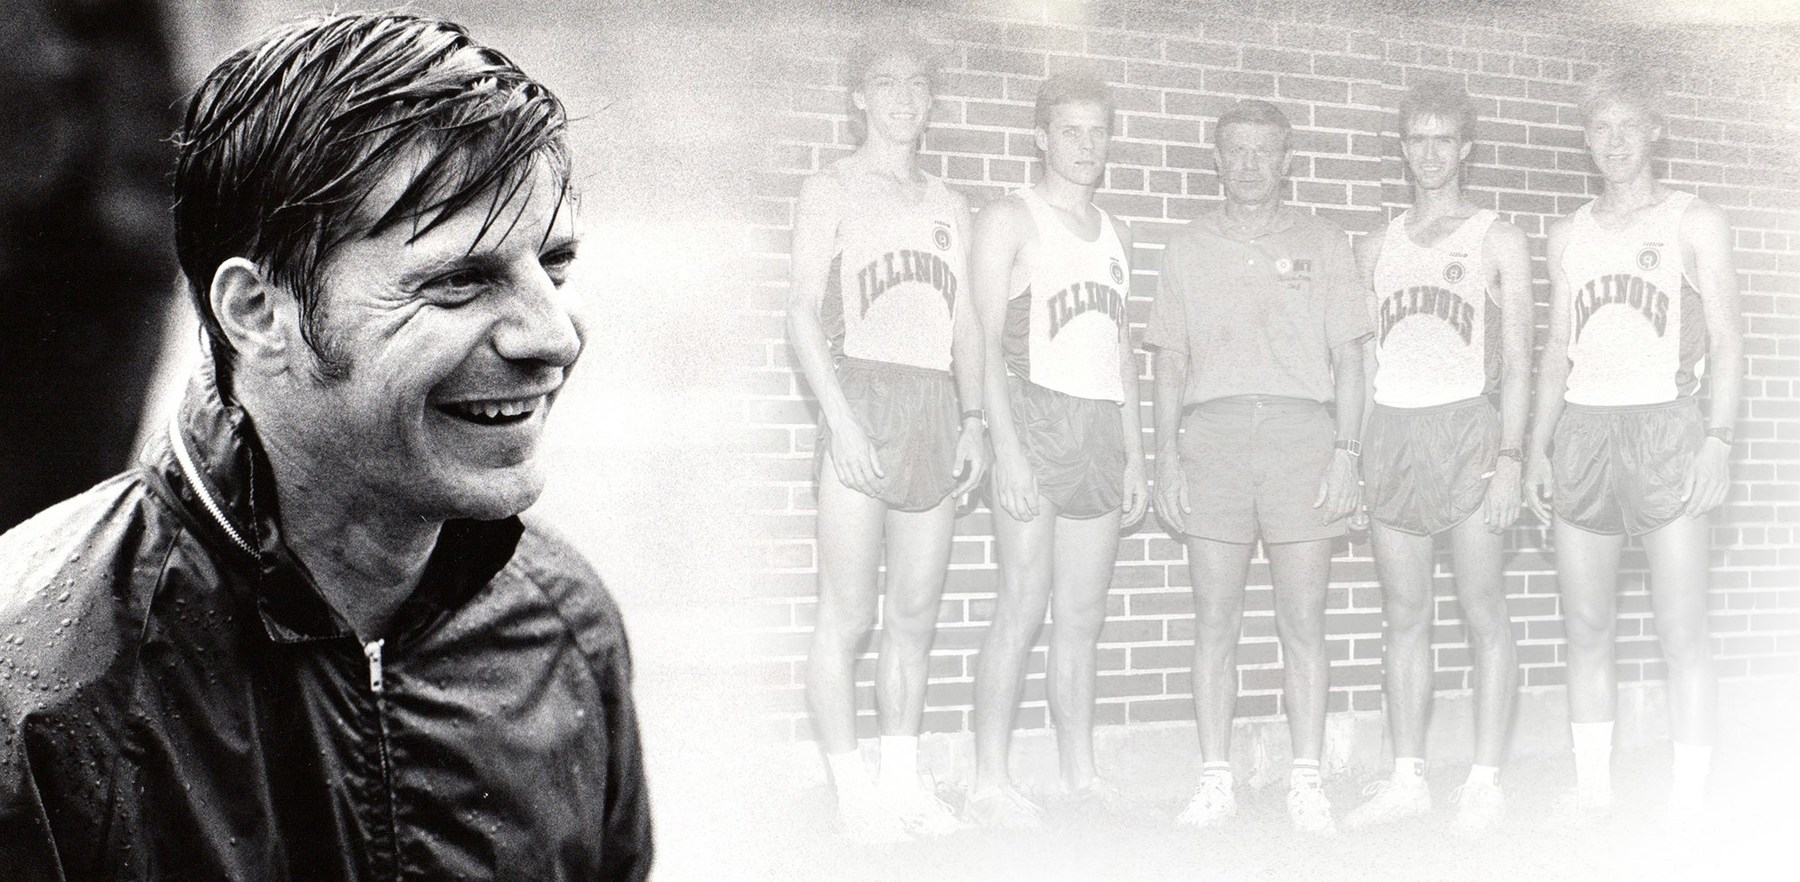 two black and white images - Gary Wieneke smiling headshot, and Wieneke with four track athletes circa 1980s